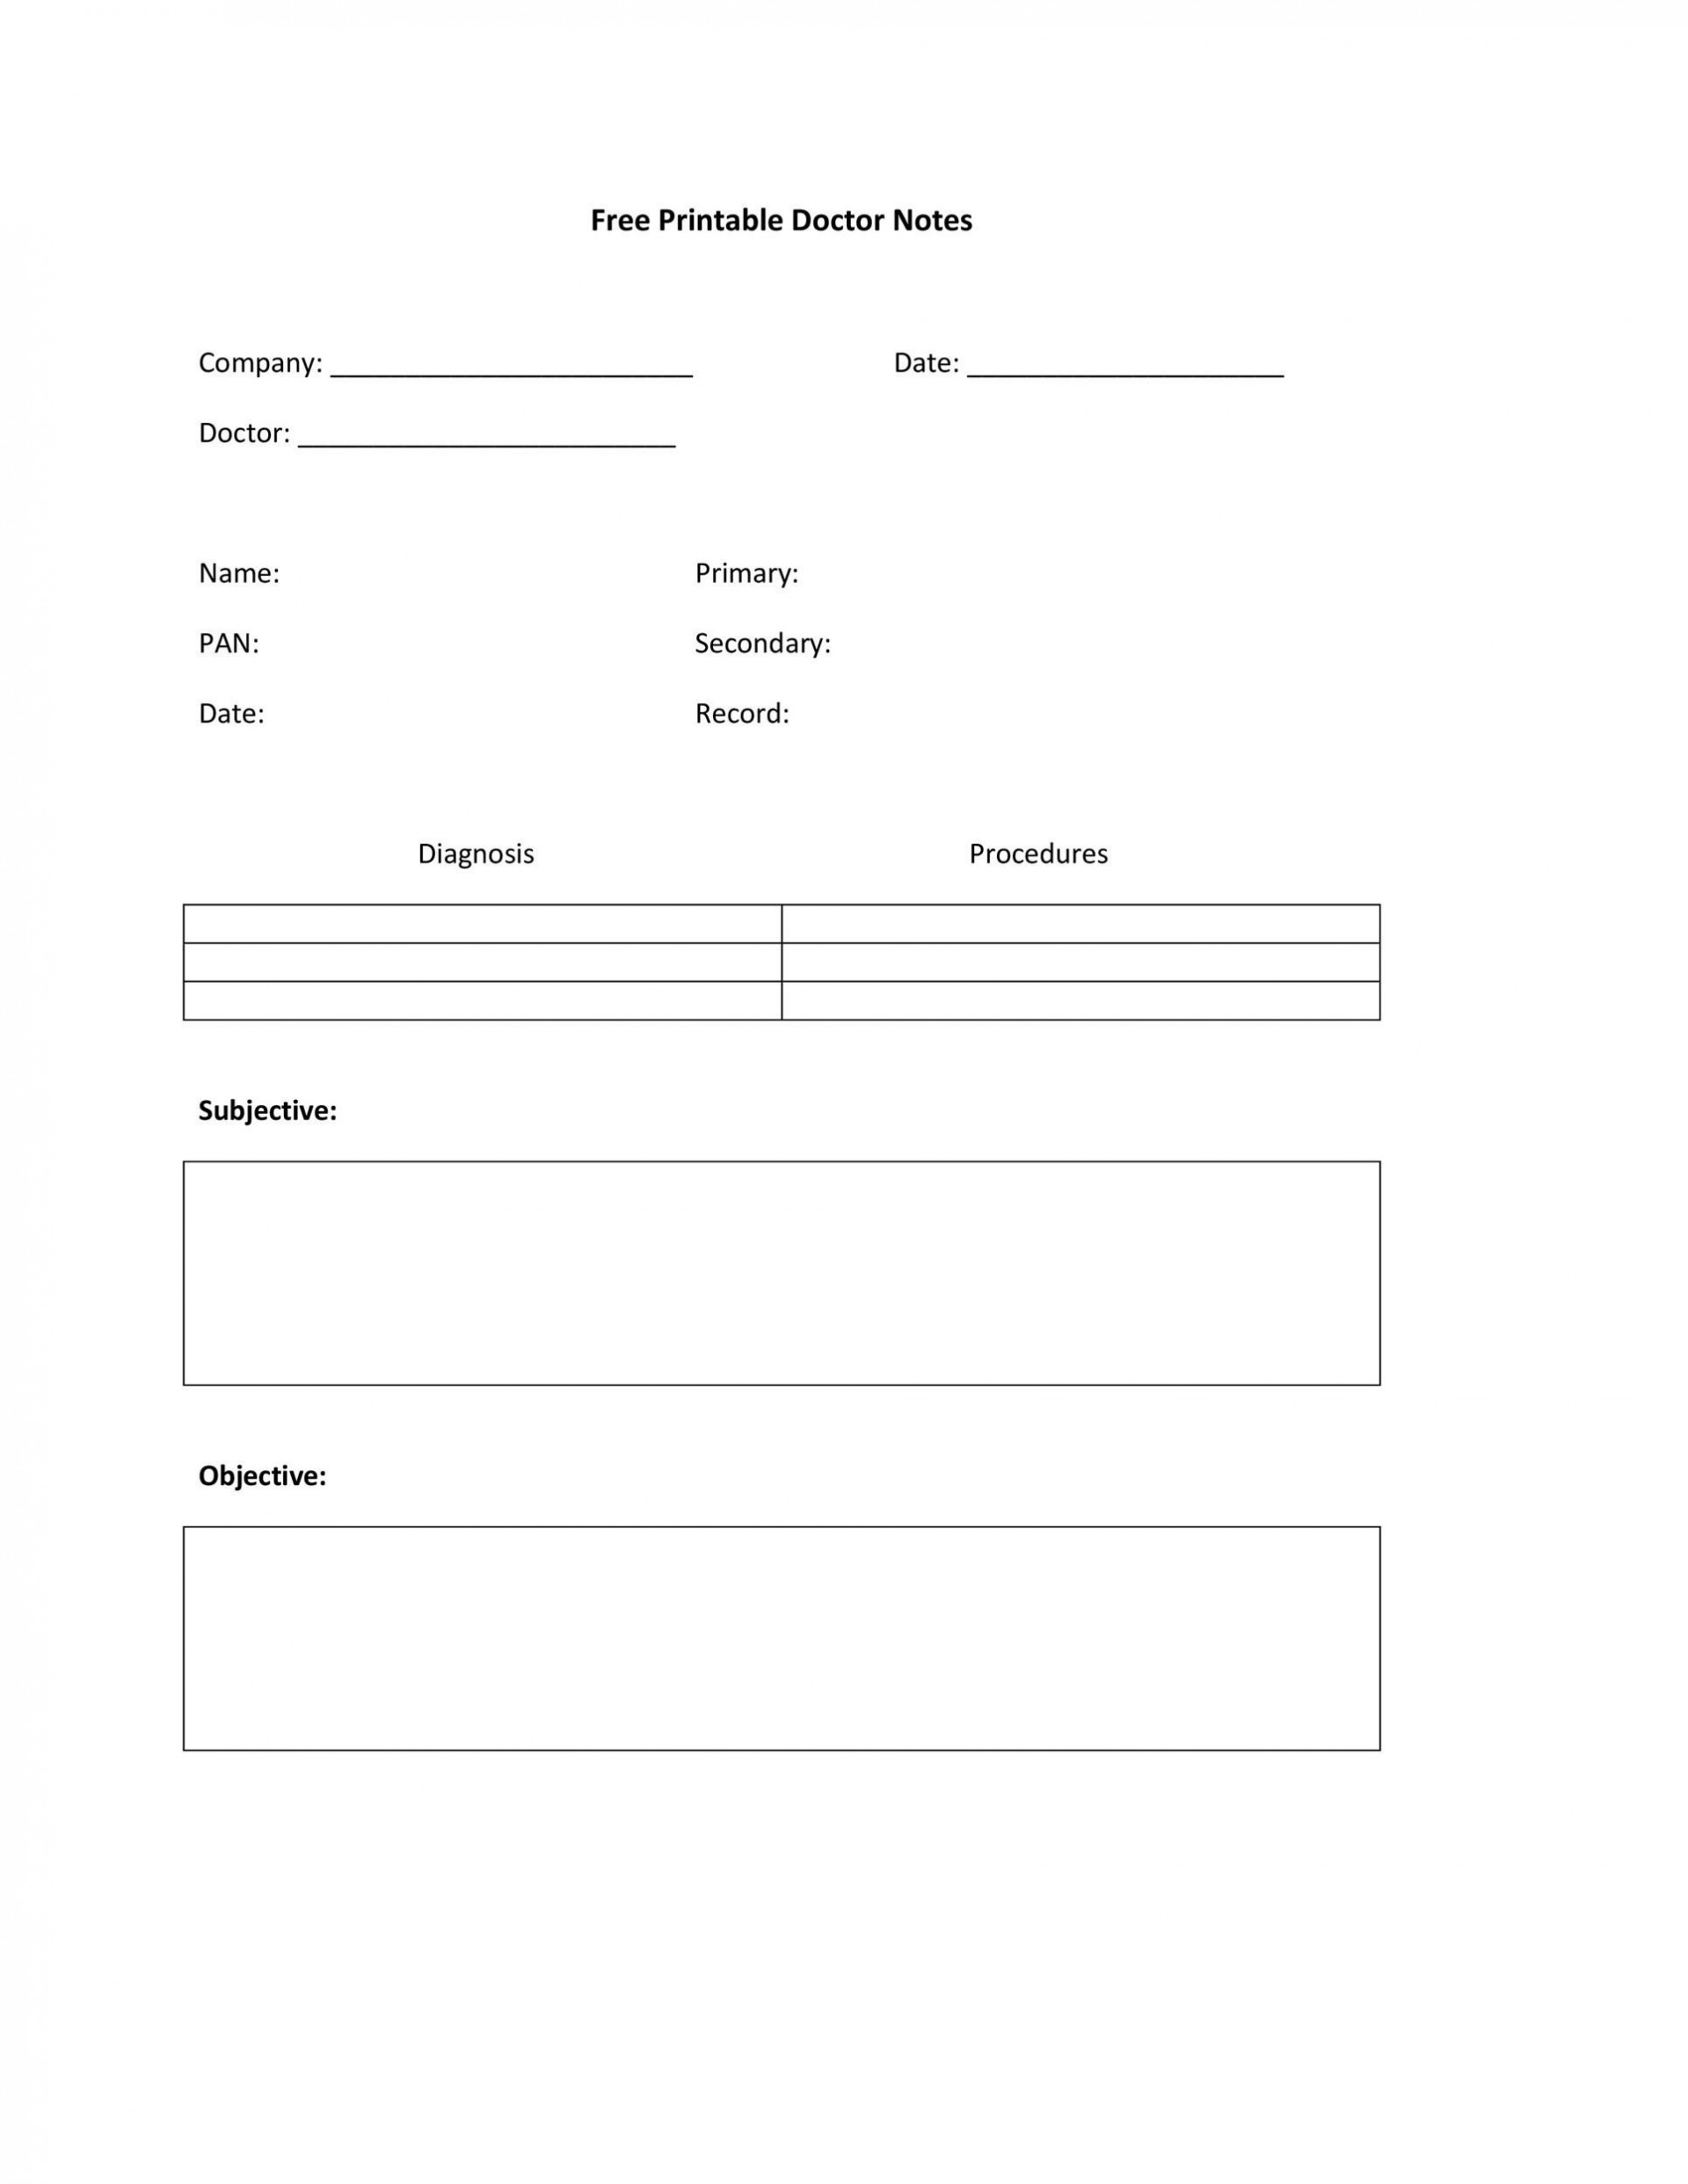 005 Fascinating Doctor Note Template Free Download Idea  Fake1920